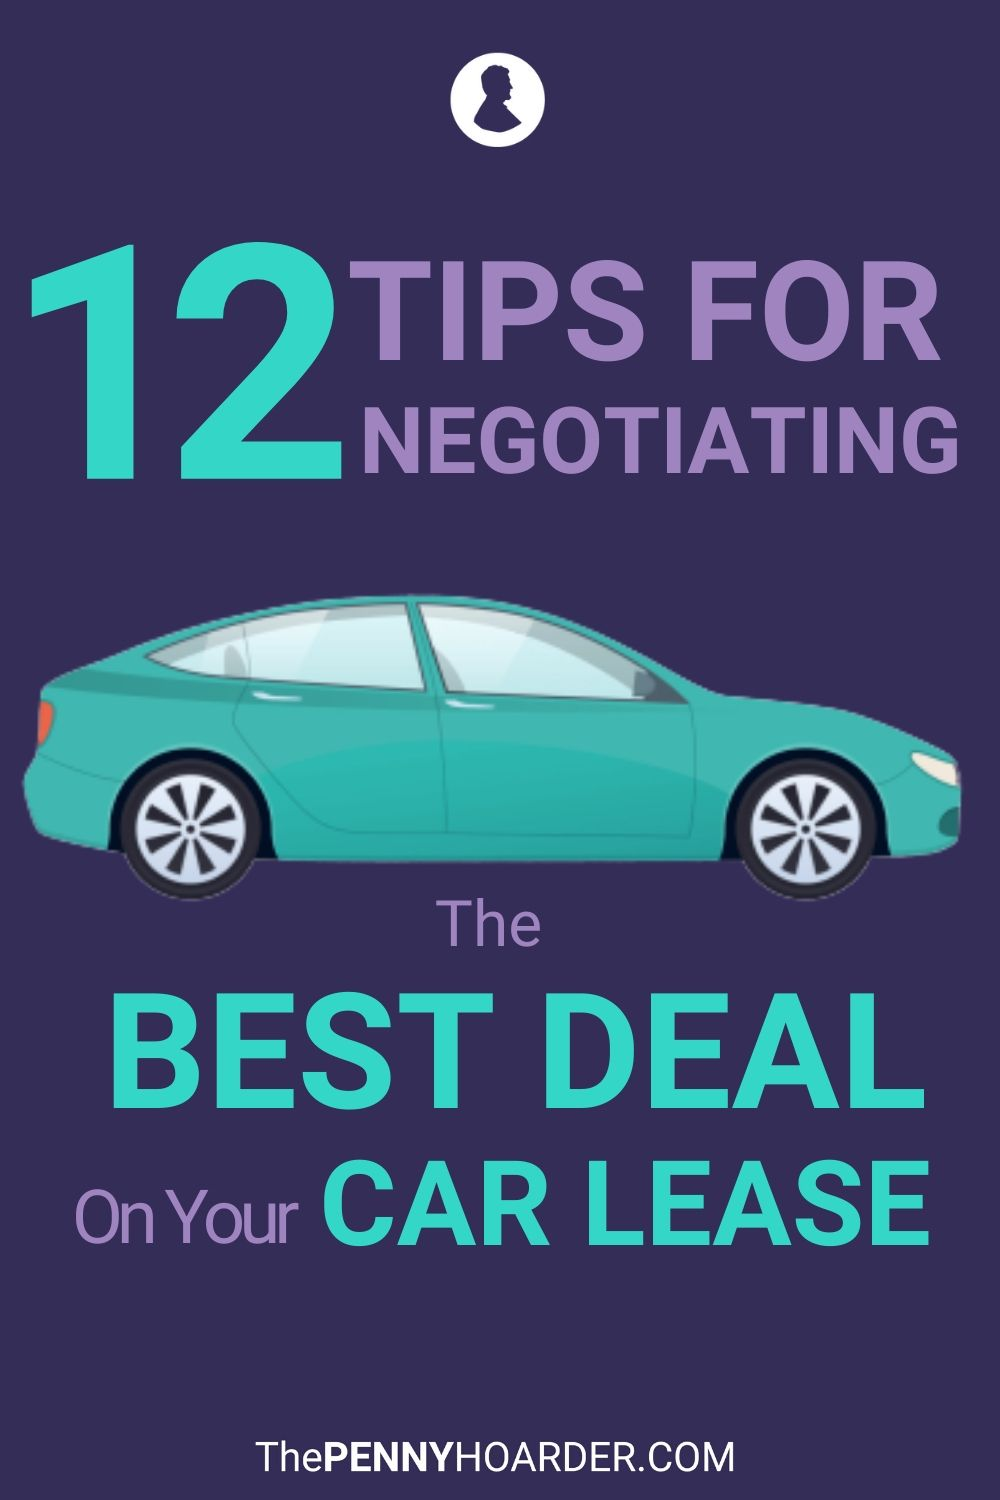 12 Tips For Negotiating The Best Deal On Your Car Lease Car Lease Smart Money Negotiation